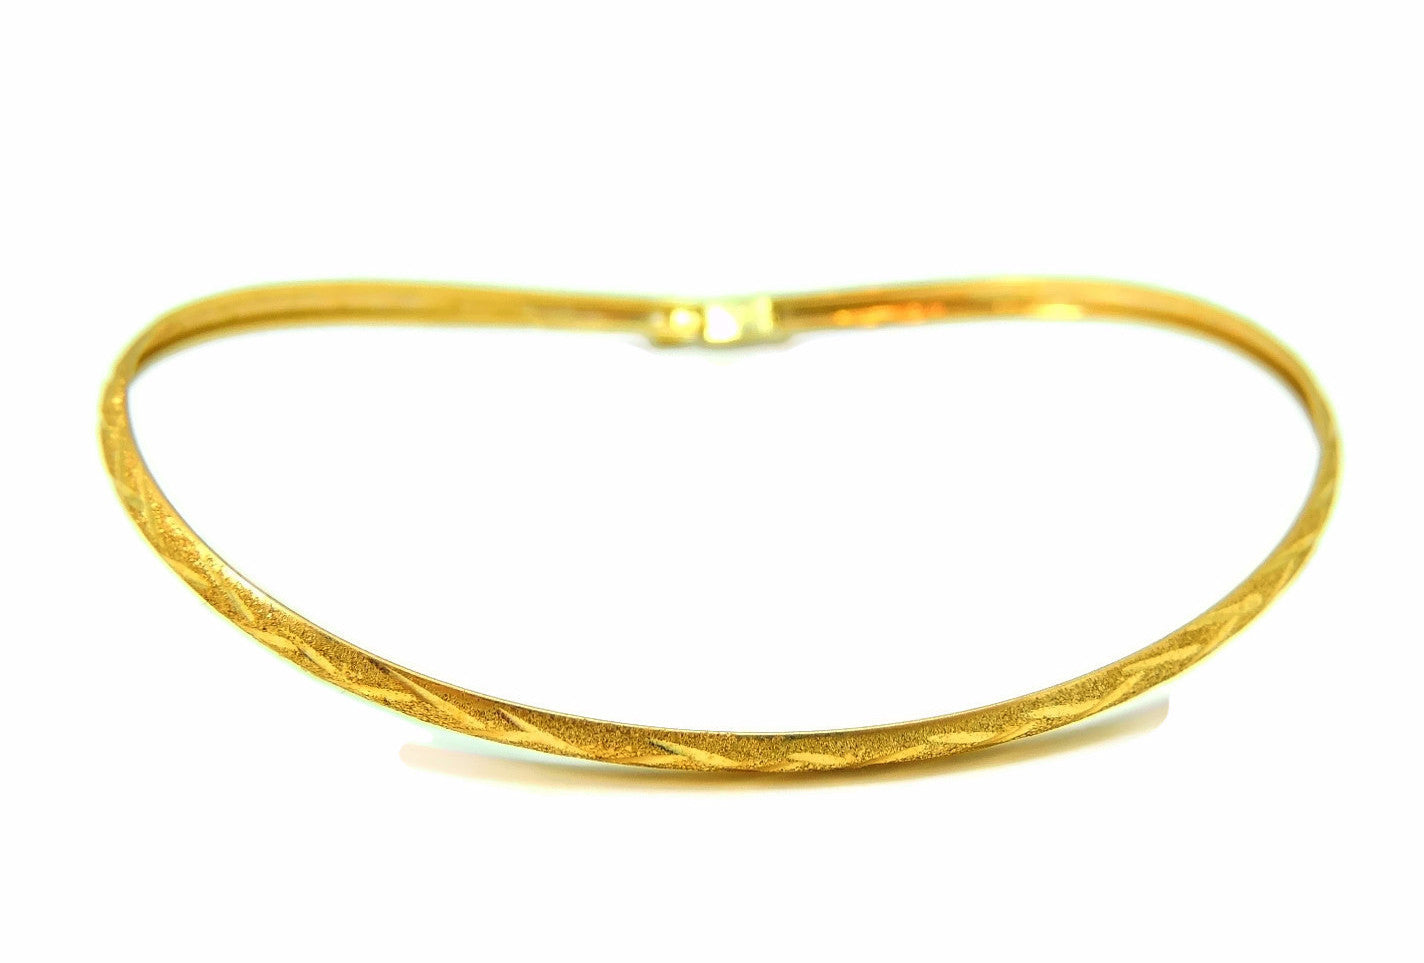 gold womens bangle hinged bangles bracelets yellow bracelet image